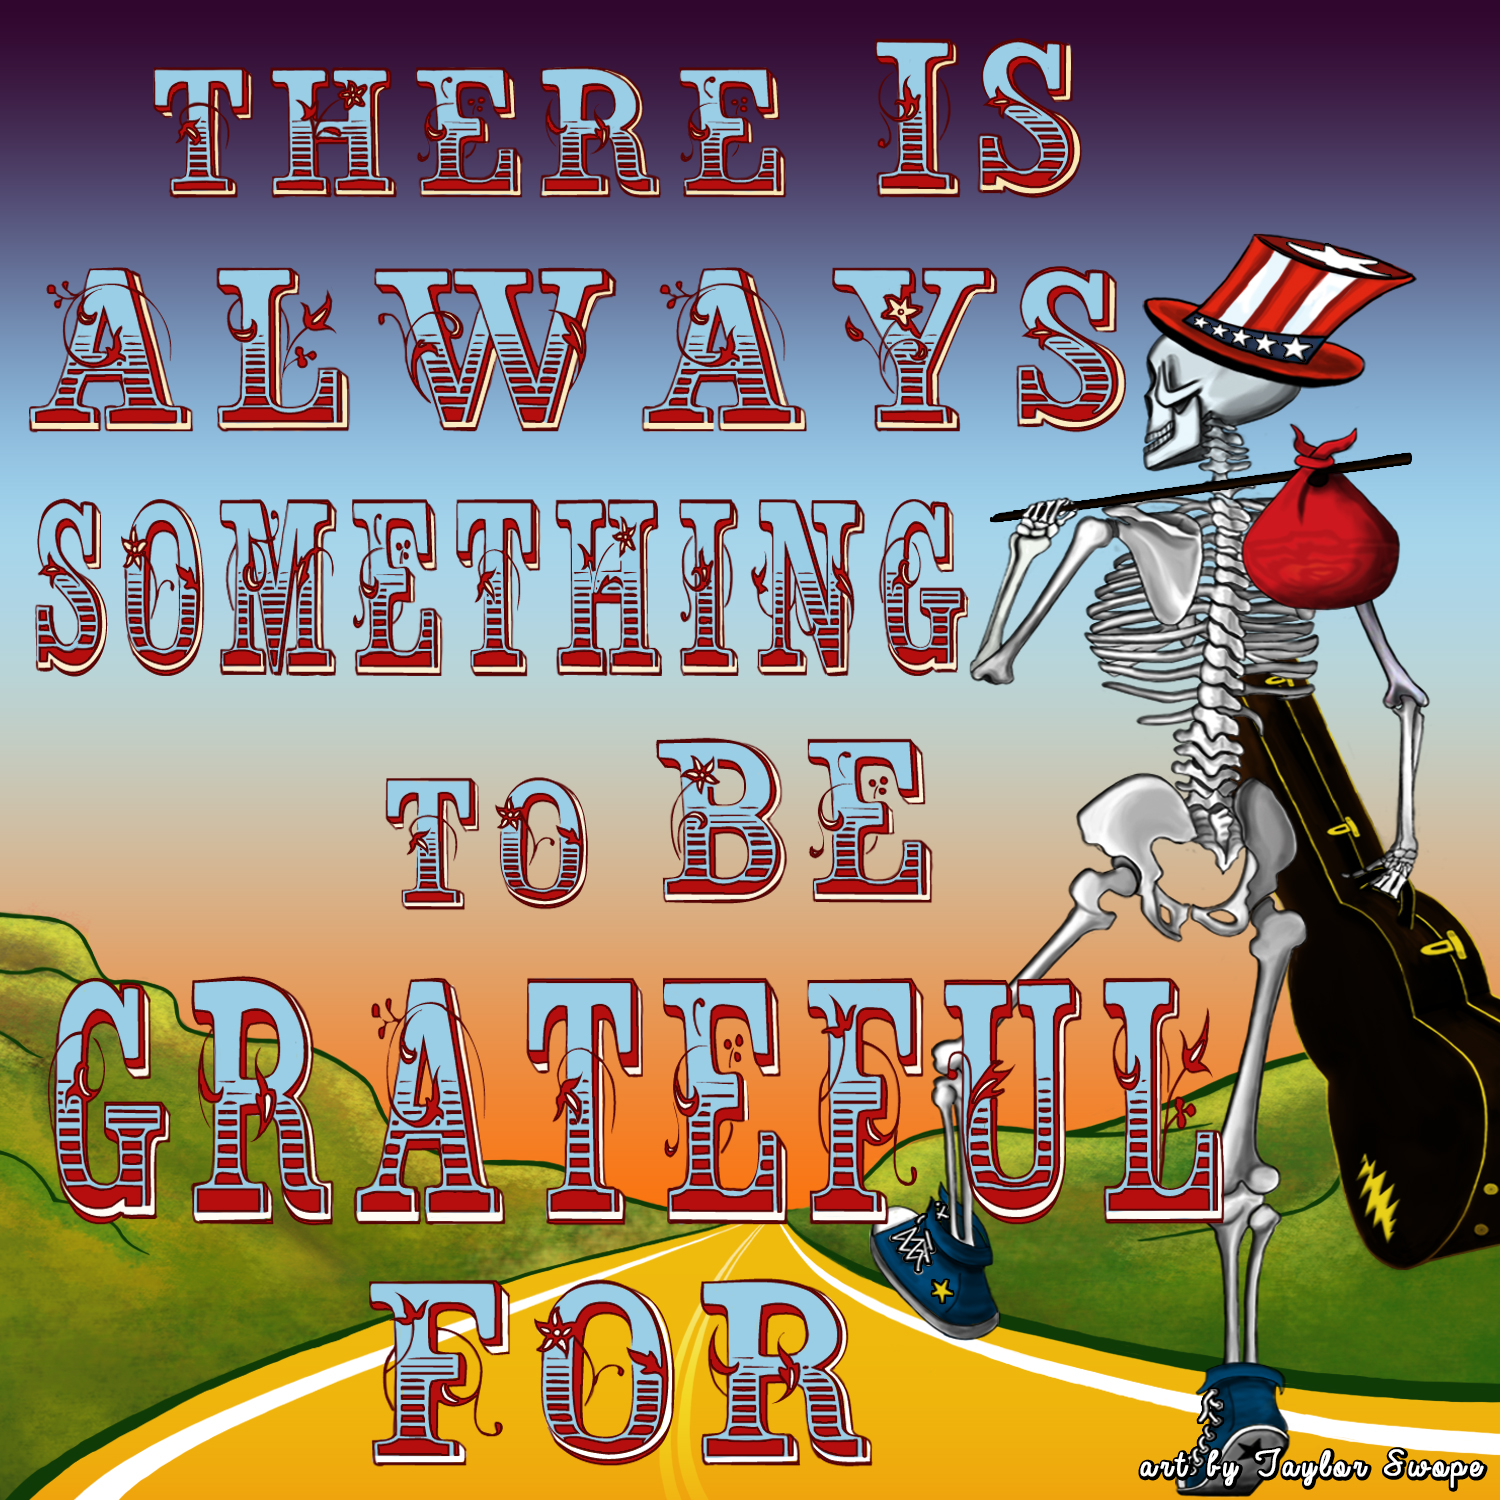 There's always something to be grateful for!